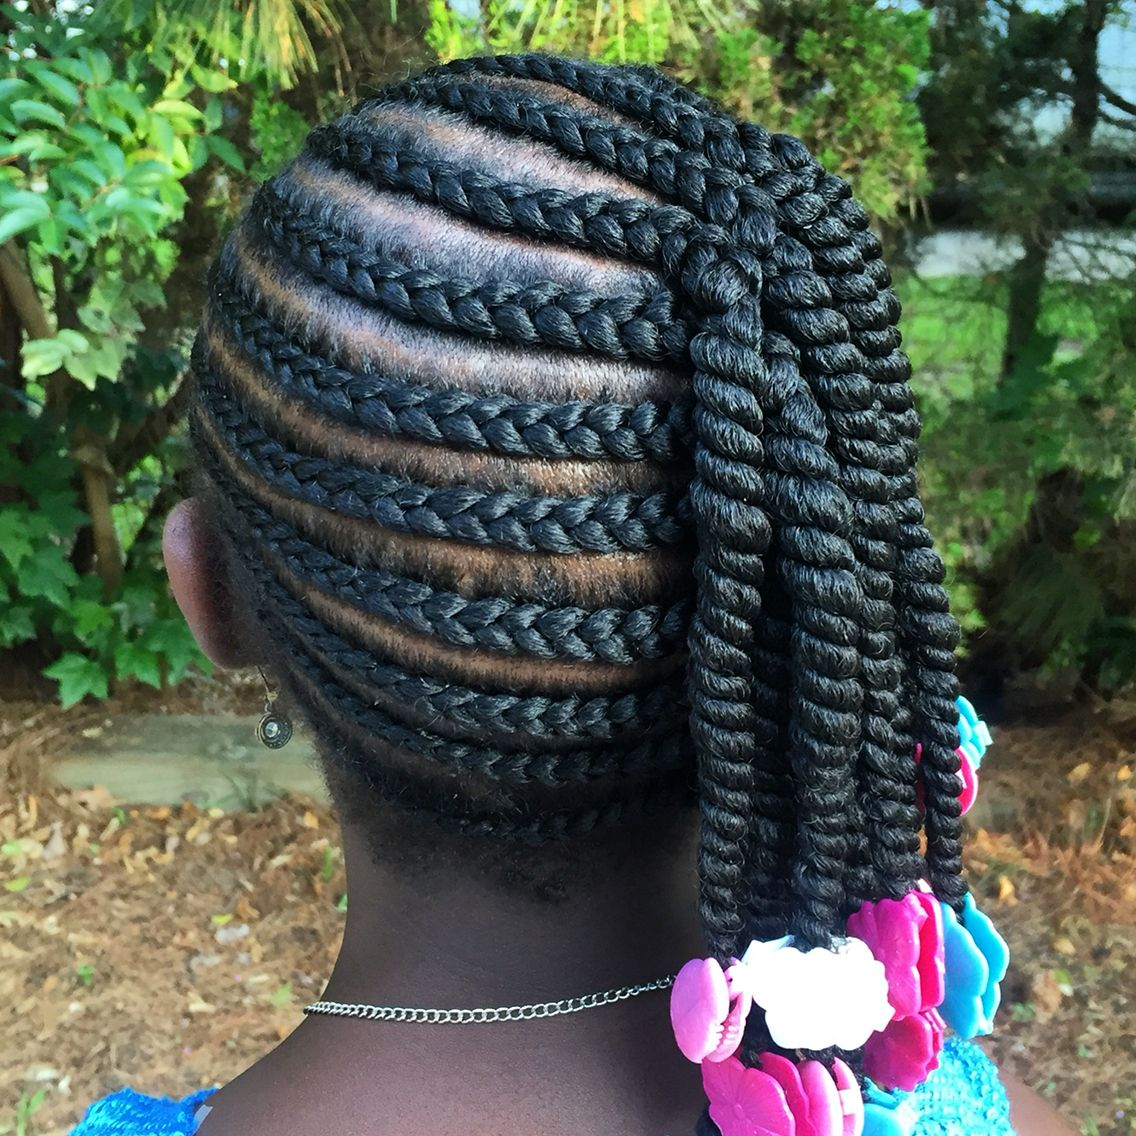 Cute hairstyles for kids hairstyleforblackwomen.net 225